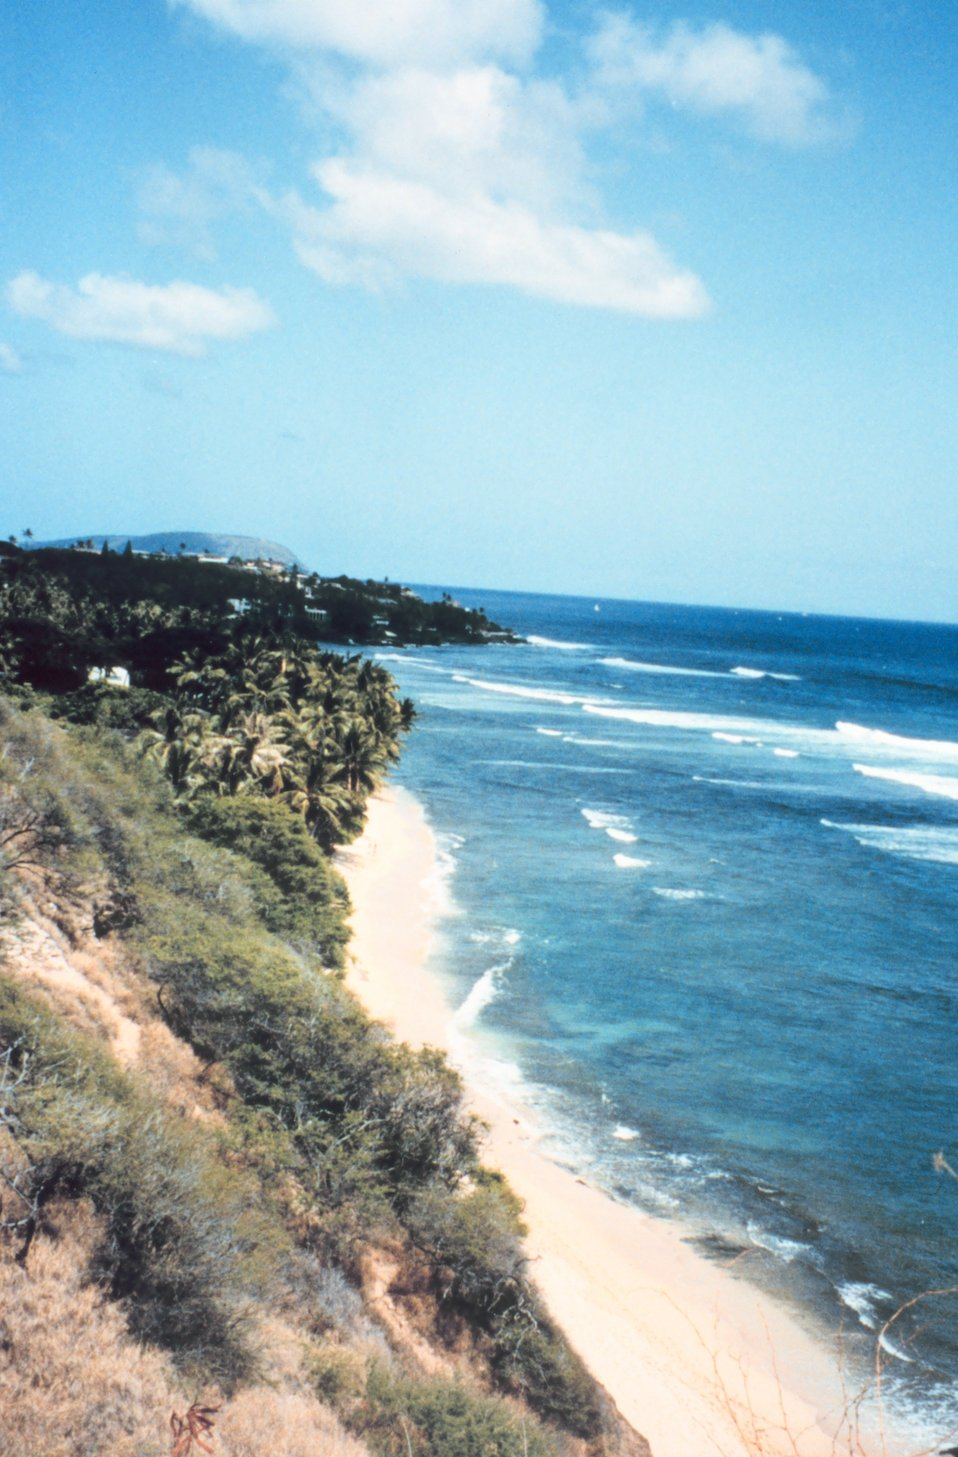 Southeast coast of Oahu